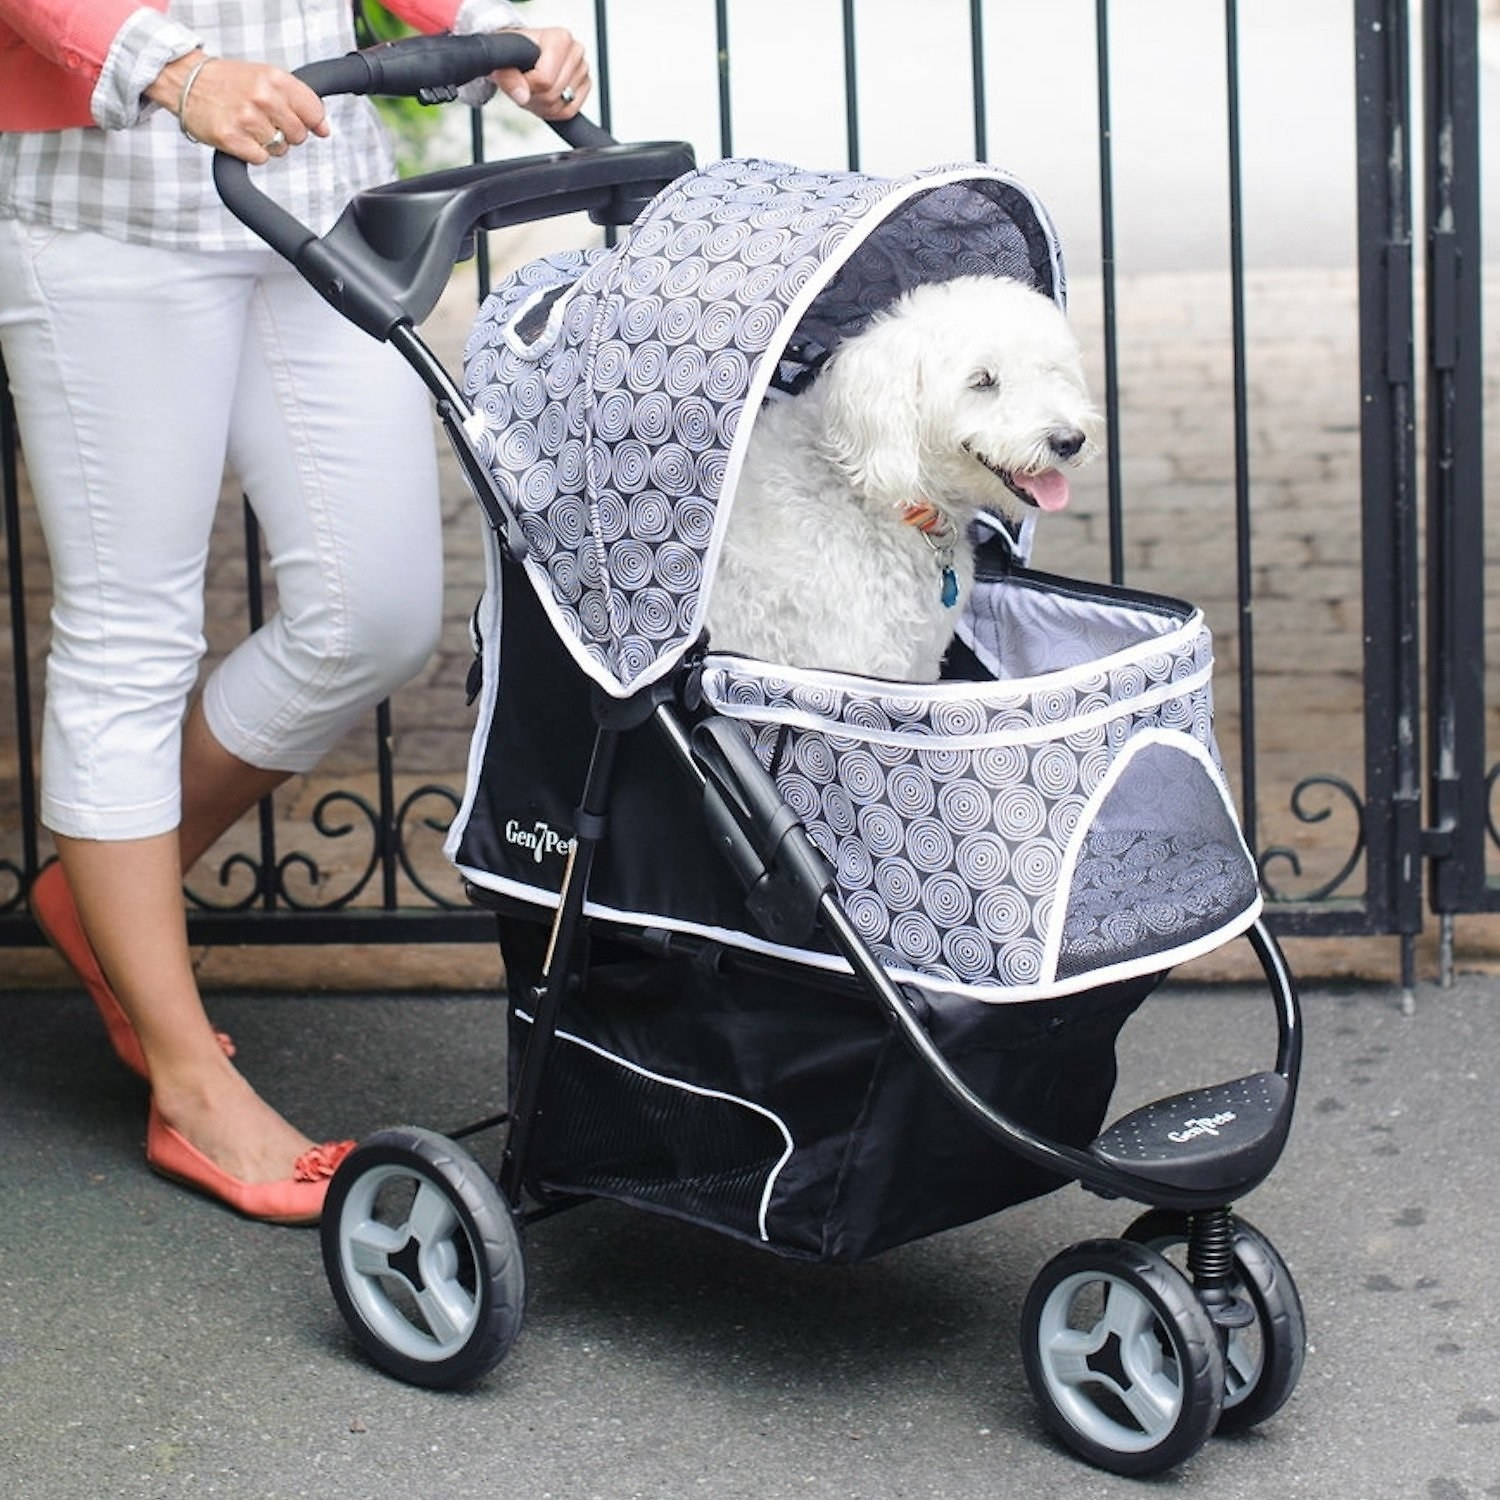 A model pushing their dog in the pet stroller with a canopy